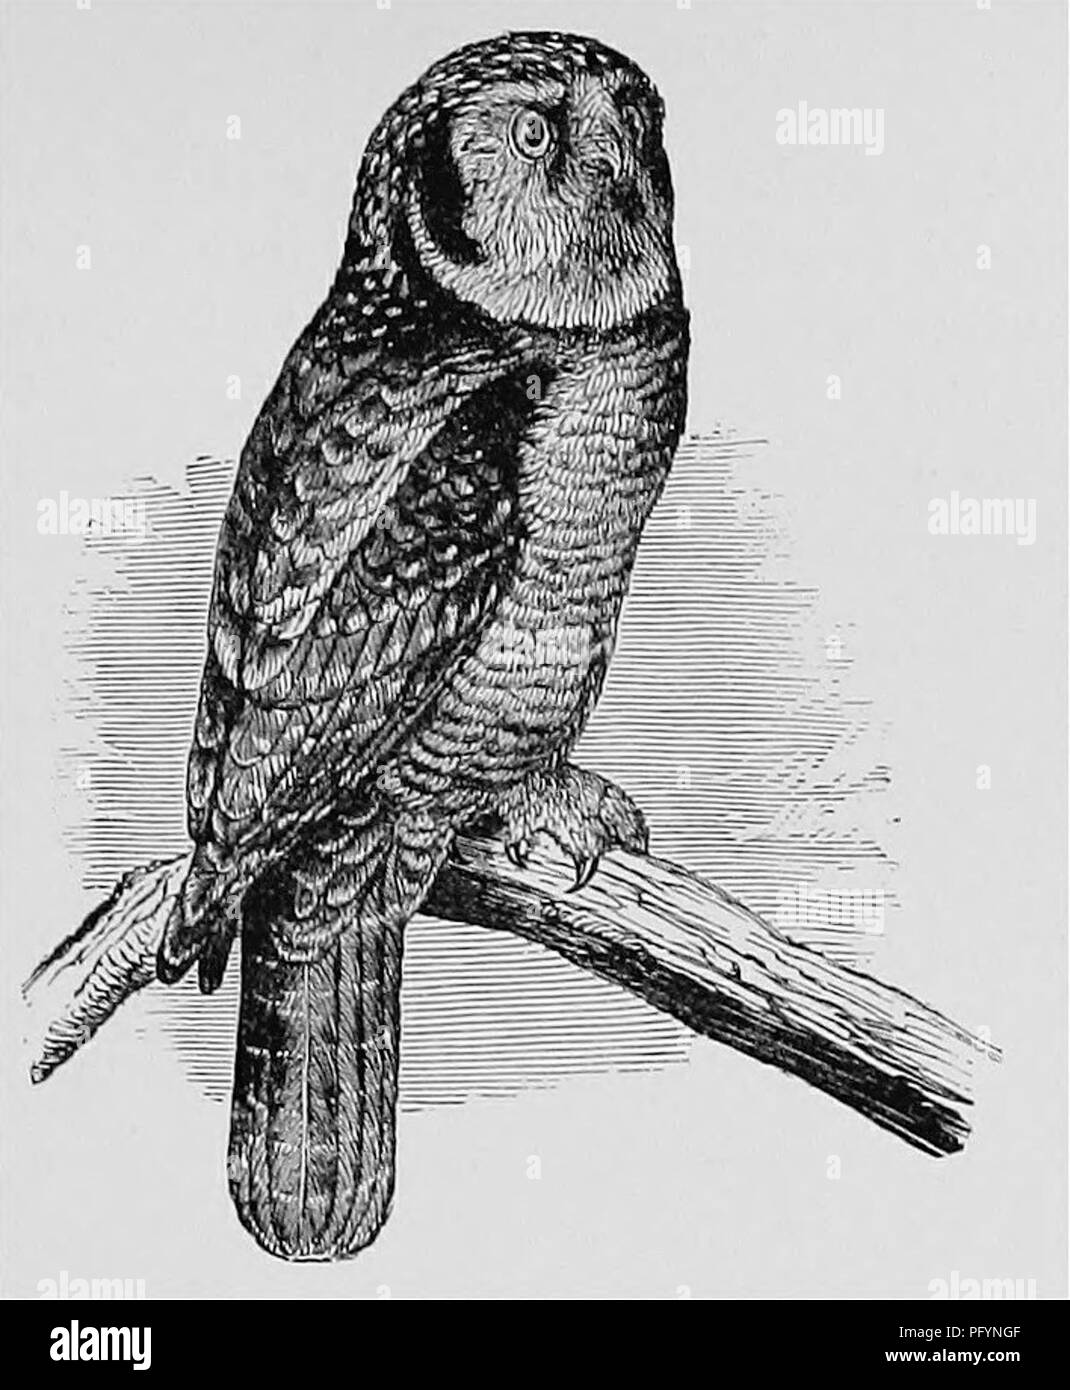 . A popular handbook of the ornithology of the United States and Canada, based on Nuttall's Manual. Birds; Birds. HAWK OWL. SURNIA ULULA CAPAROCH. Char. Above, dull blackish brown, spotted with white; crown without spots; dark patch on the cheeks; face white, the feathers with dark margins; tail and wing with white bars; below, white with dark bars. Length 1434; to 17^ inches. Nest. On a tree; of twigs lined with feathers. ^gg^- 2-7 ; dull white; 1.55 X 1.25. This remarkable species, forming a connecting link with the preceding genus of the Hawks, is nearly confined to the Arctic wilds of both Stock Photo